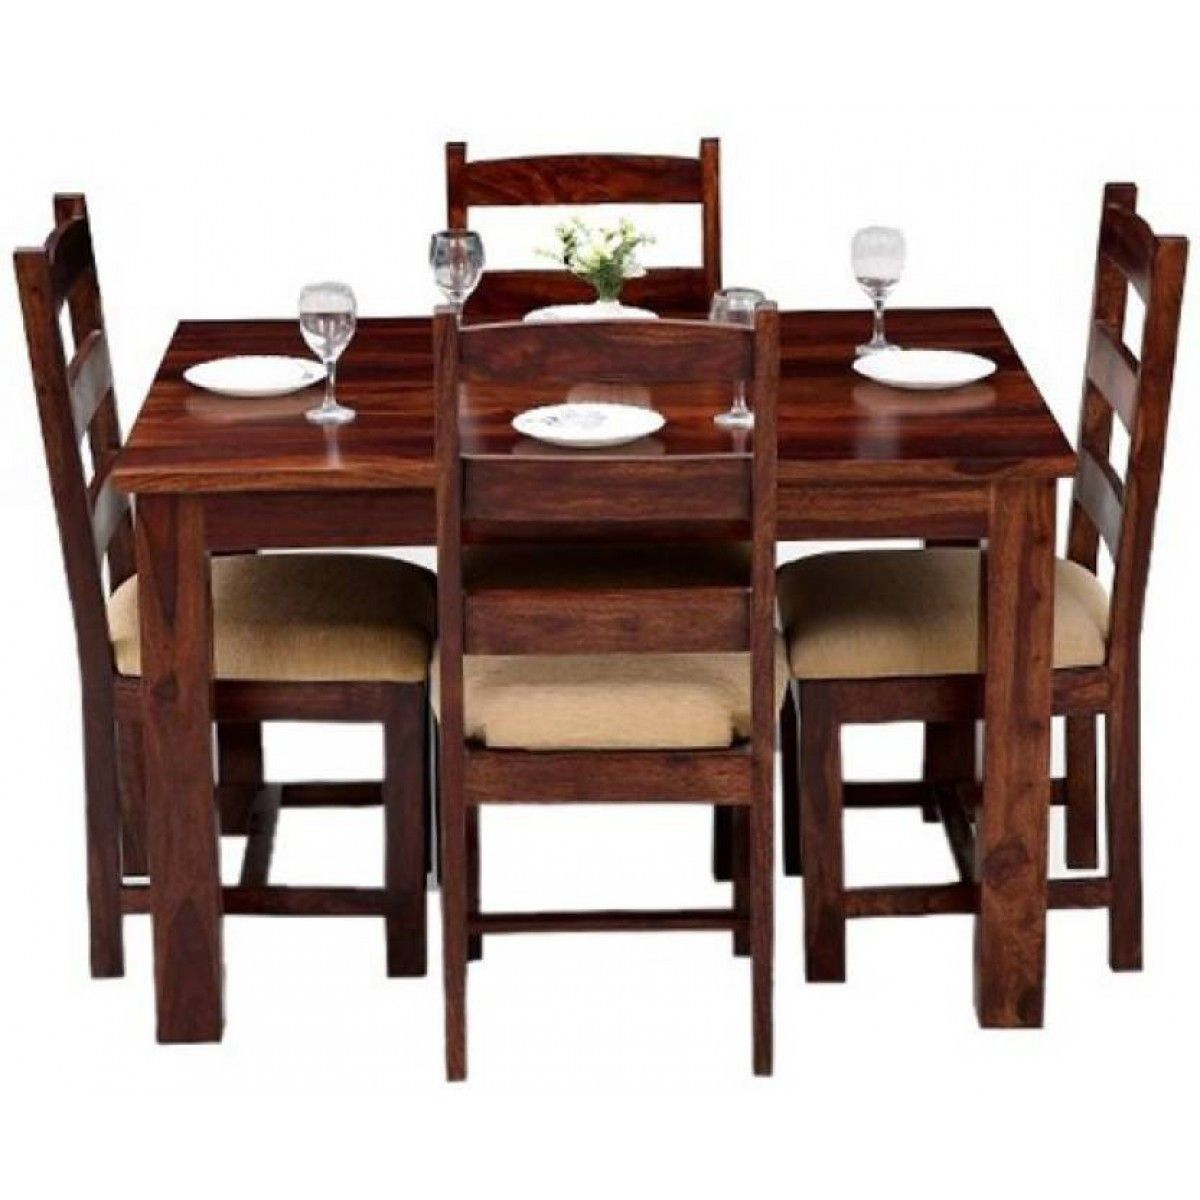 Four Seater Dining Table Set Specially Crafted Up Of Rose Woods